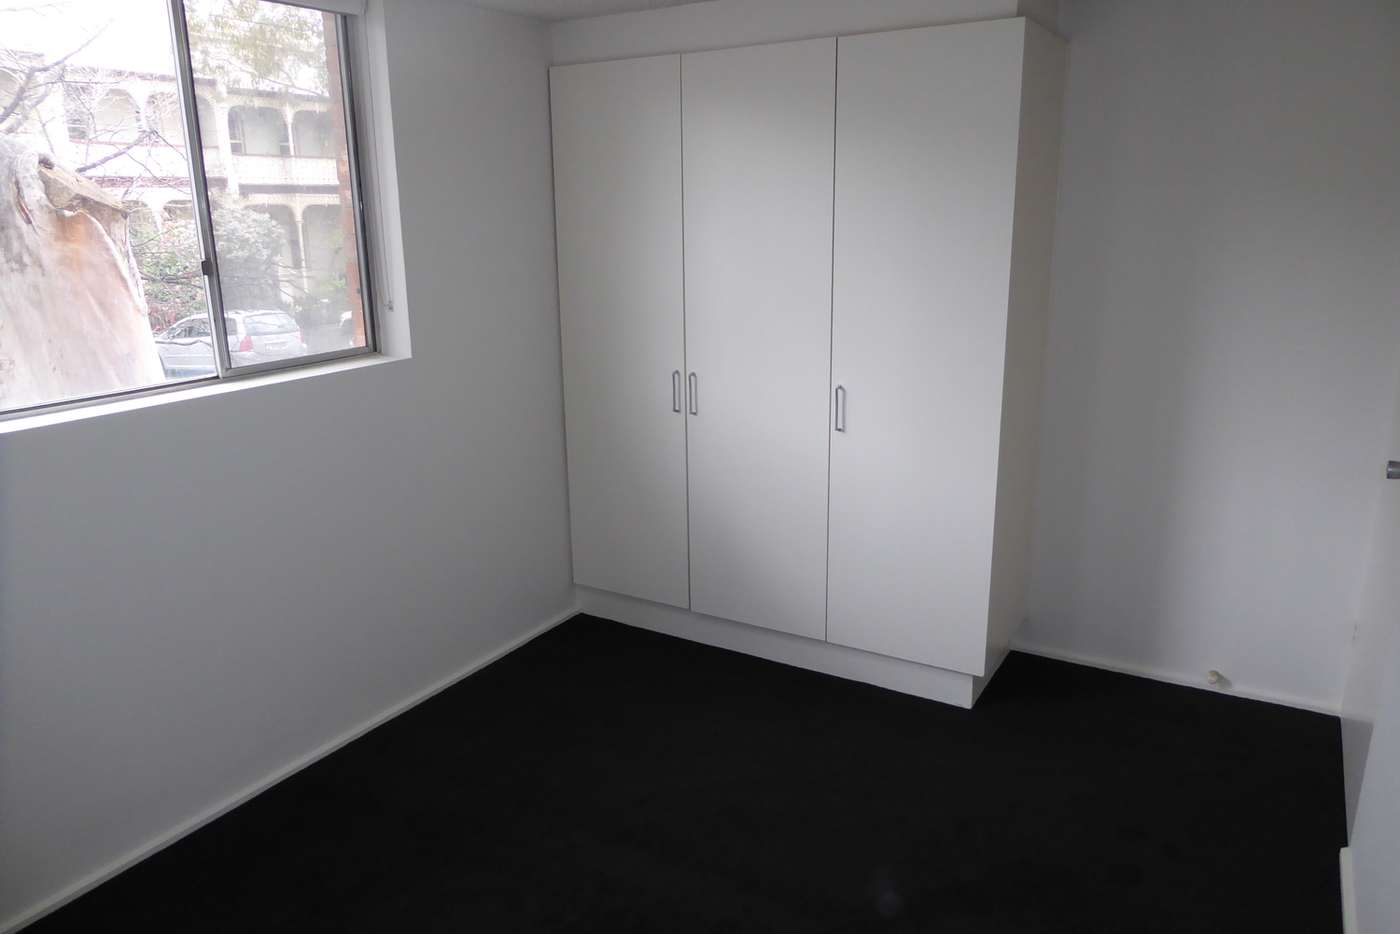 Seventh view of Homely apartment listing, 7/19 Wood Street, North Melbourne VIC 3051